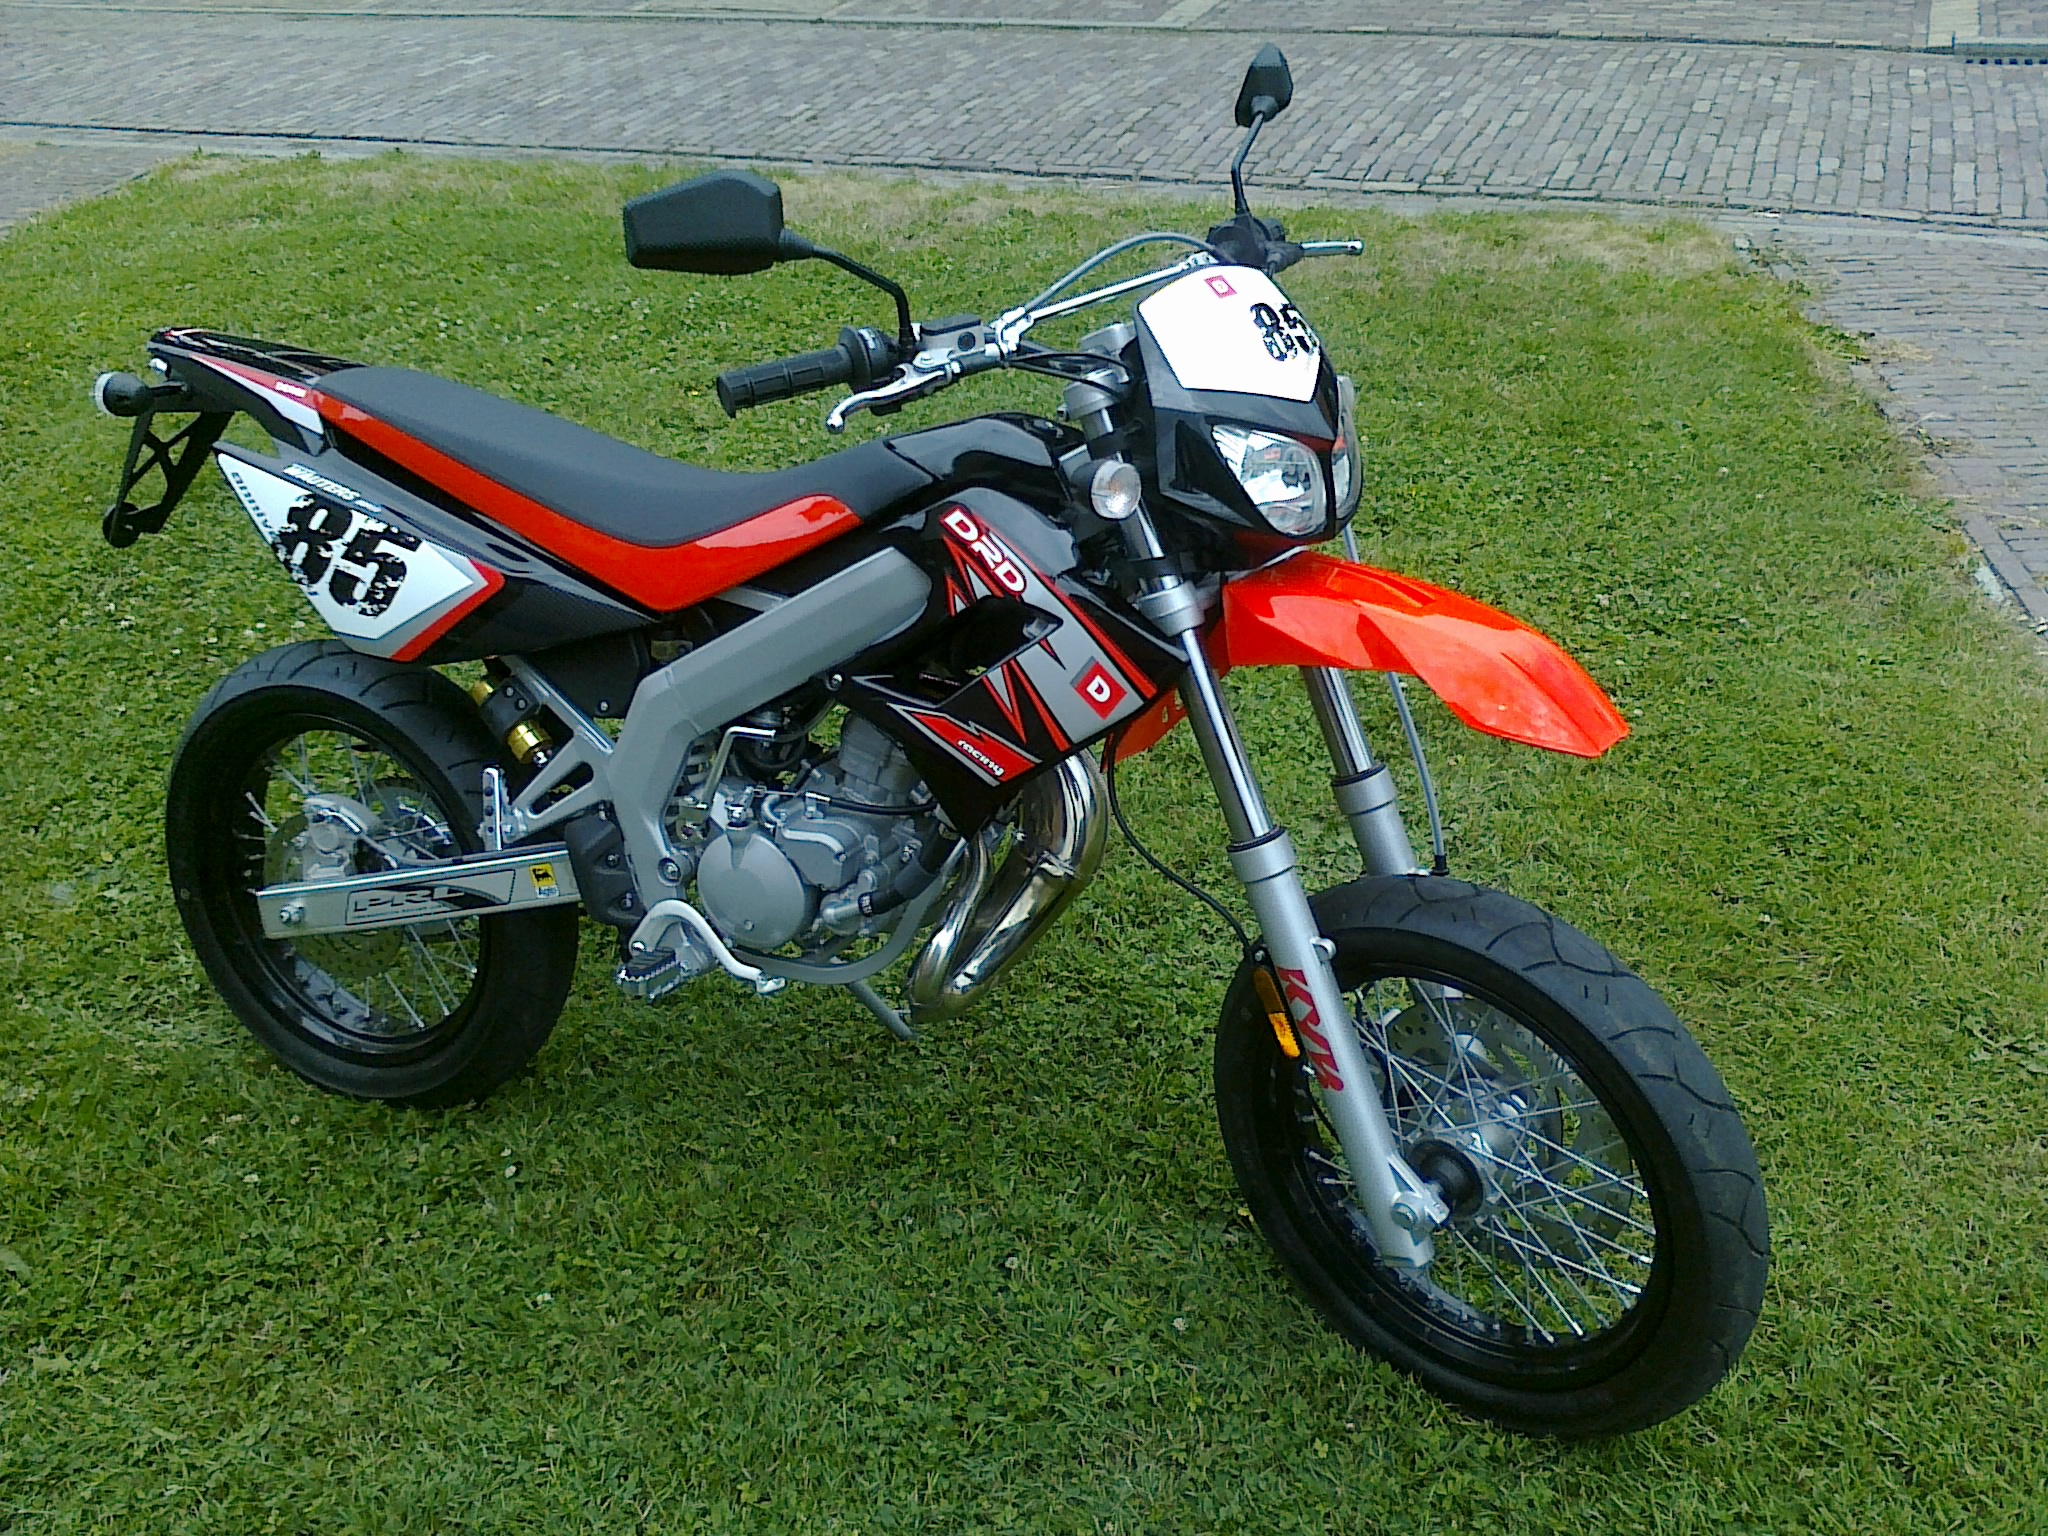 50ccm Schaltmoped - Derbi senda 50